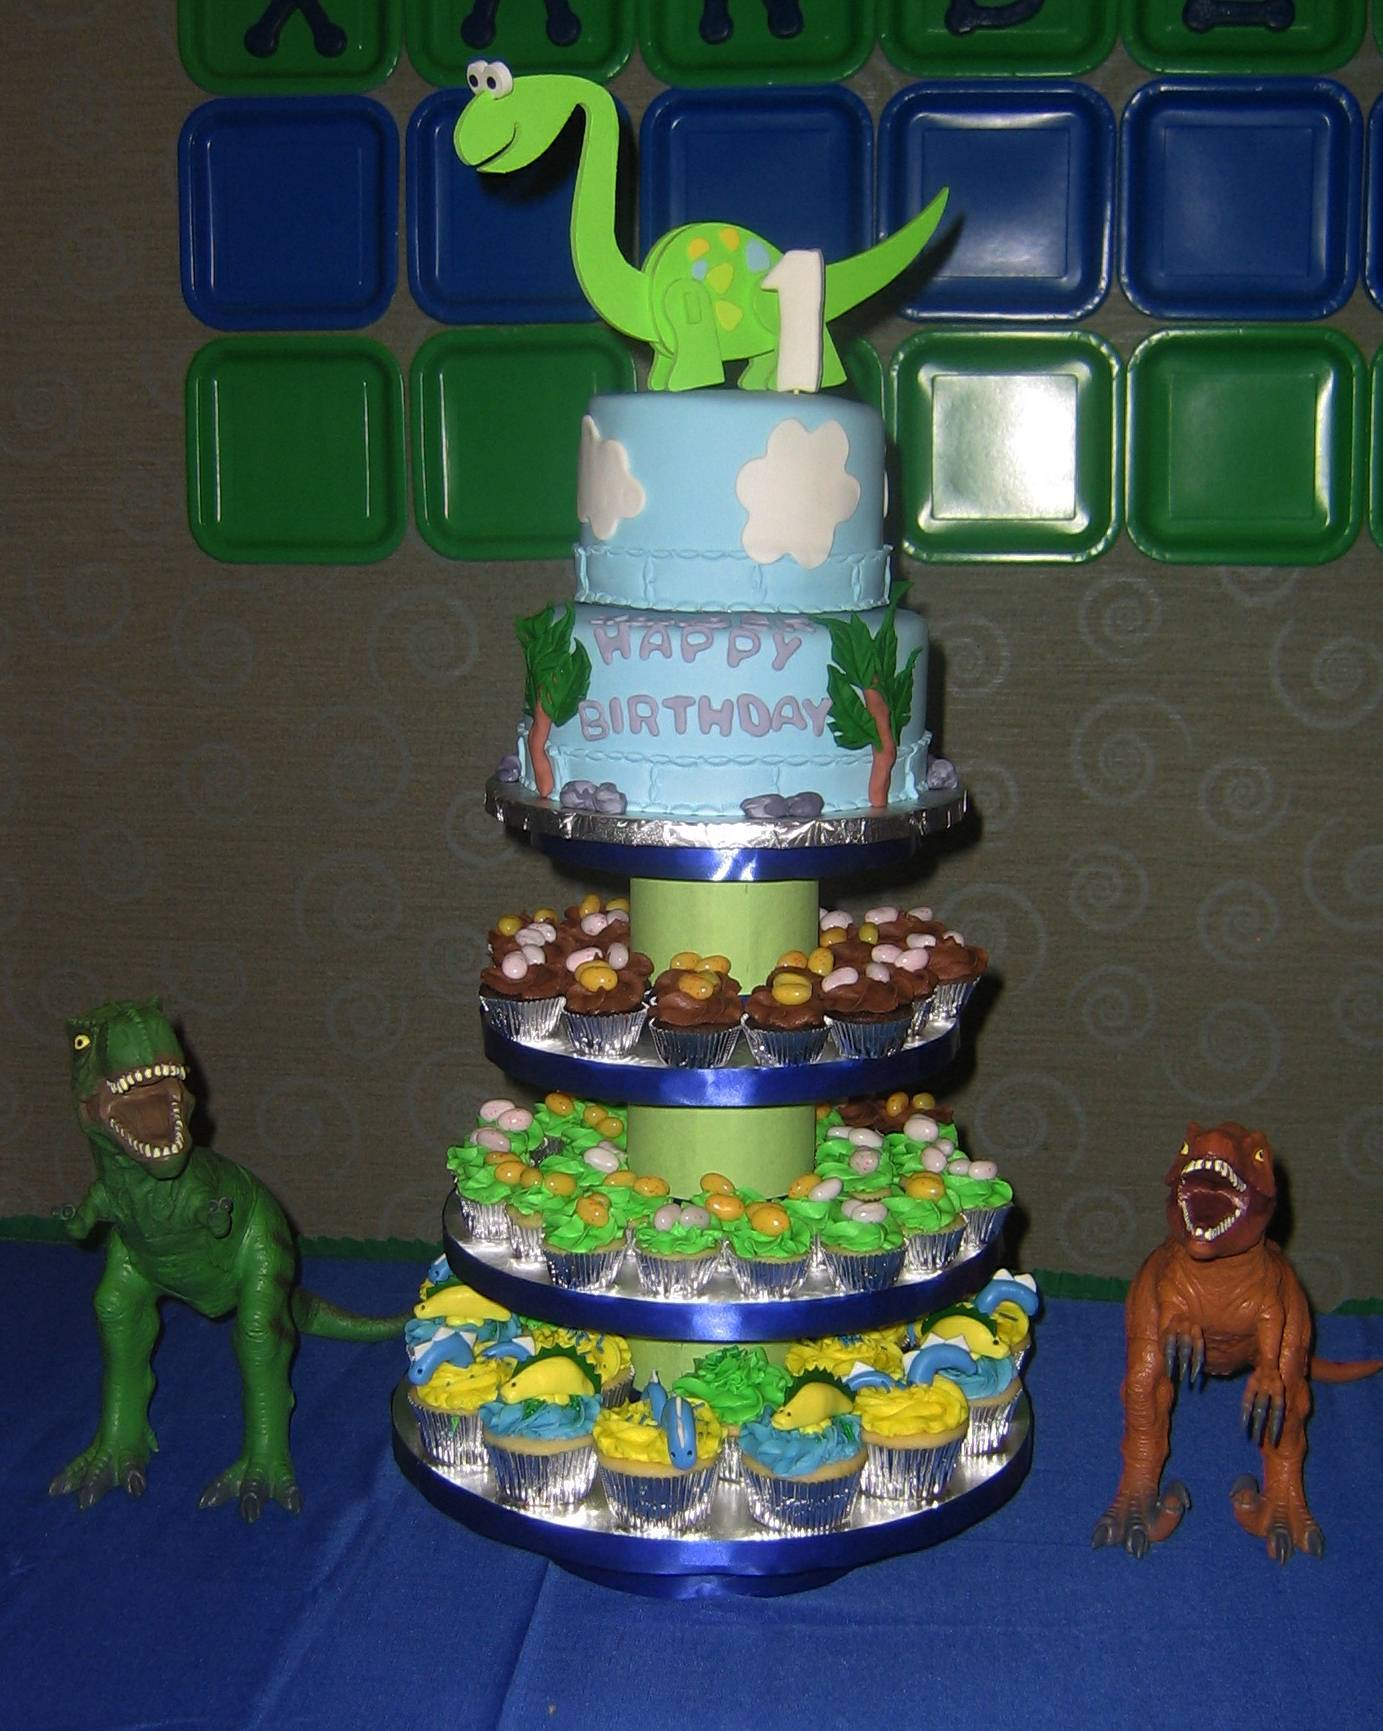 Dinasour Cake and Cupcakes